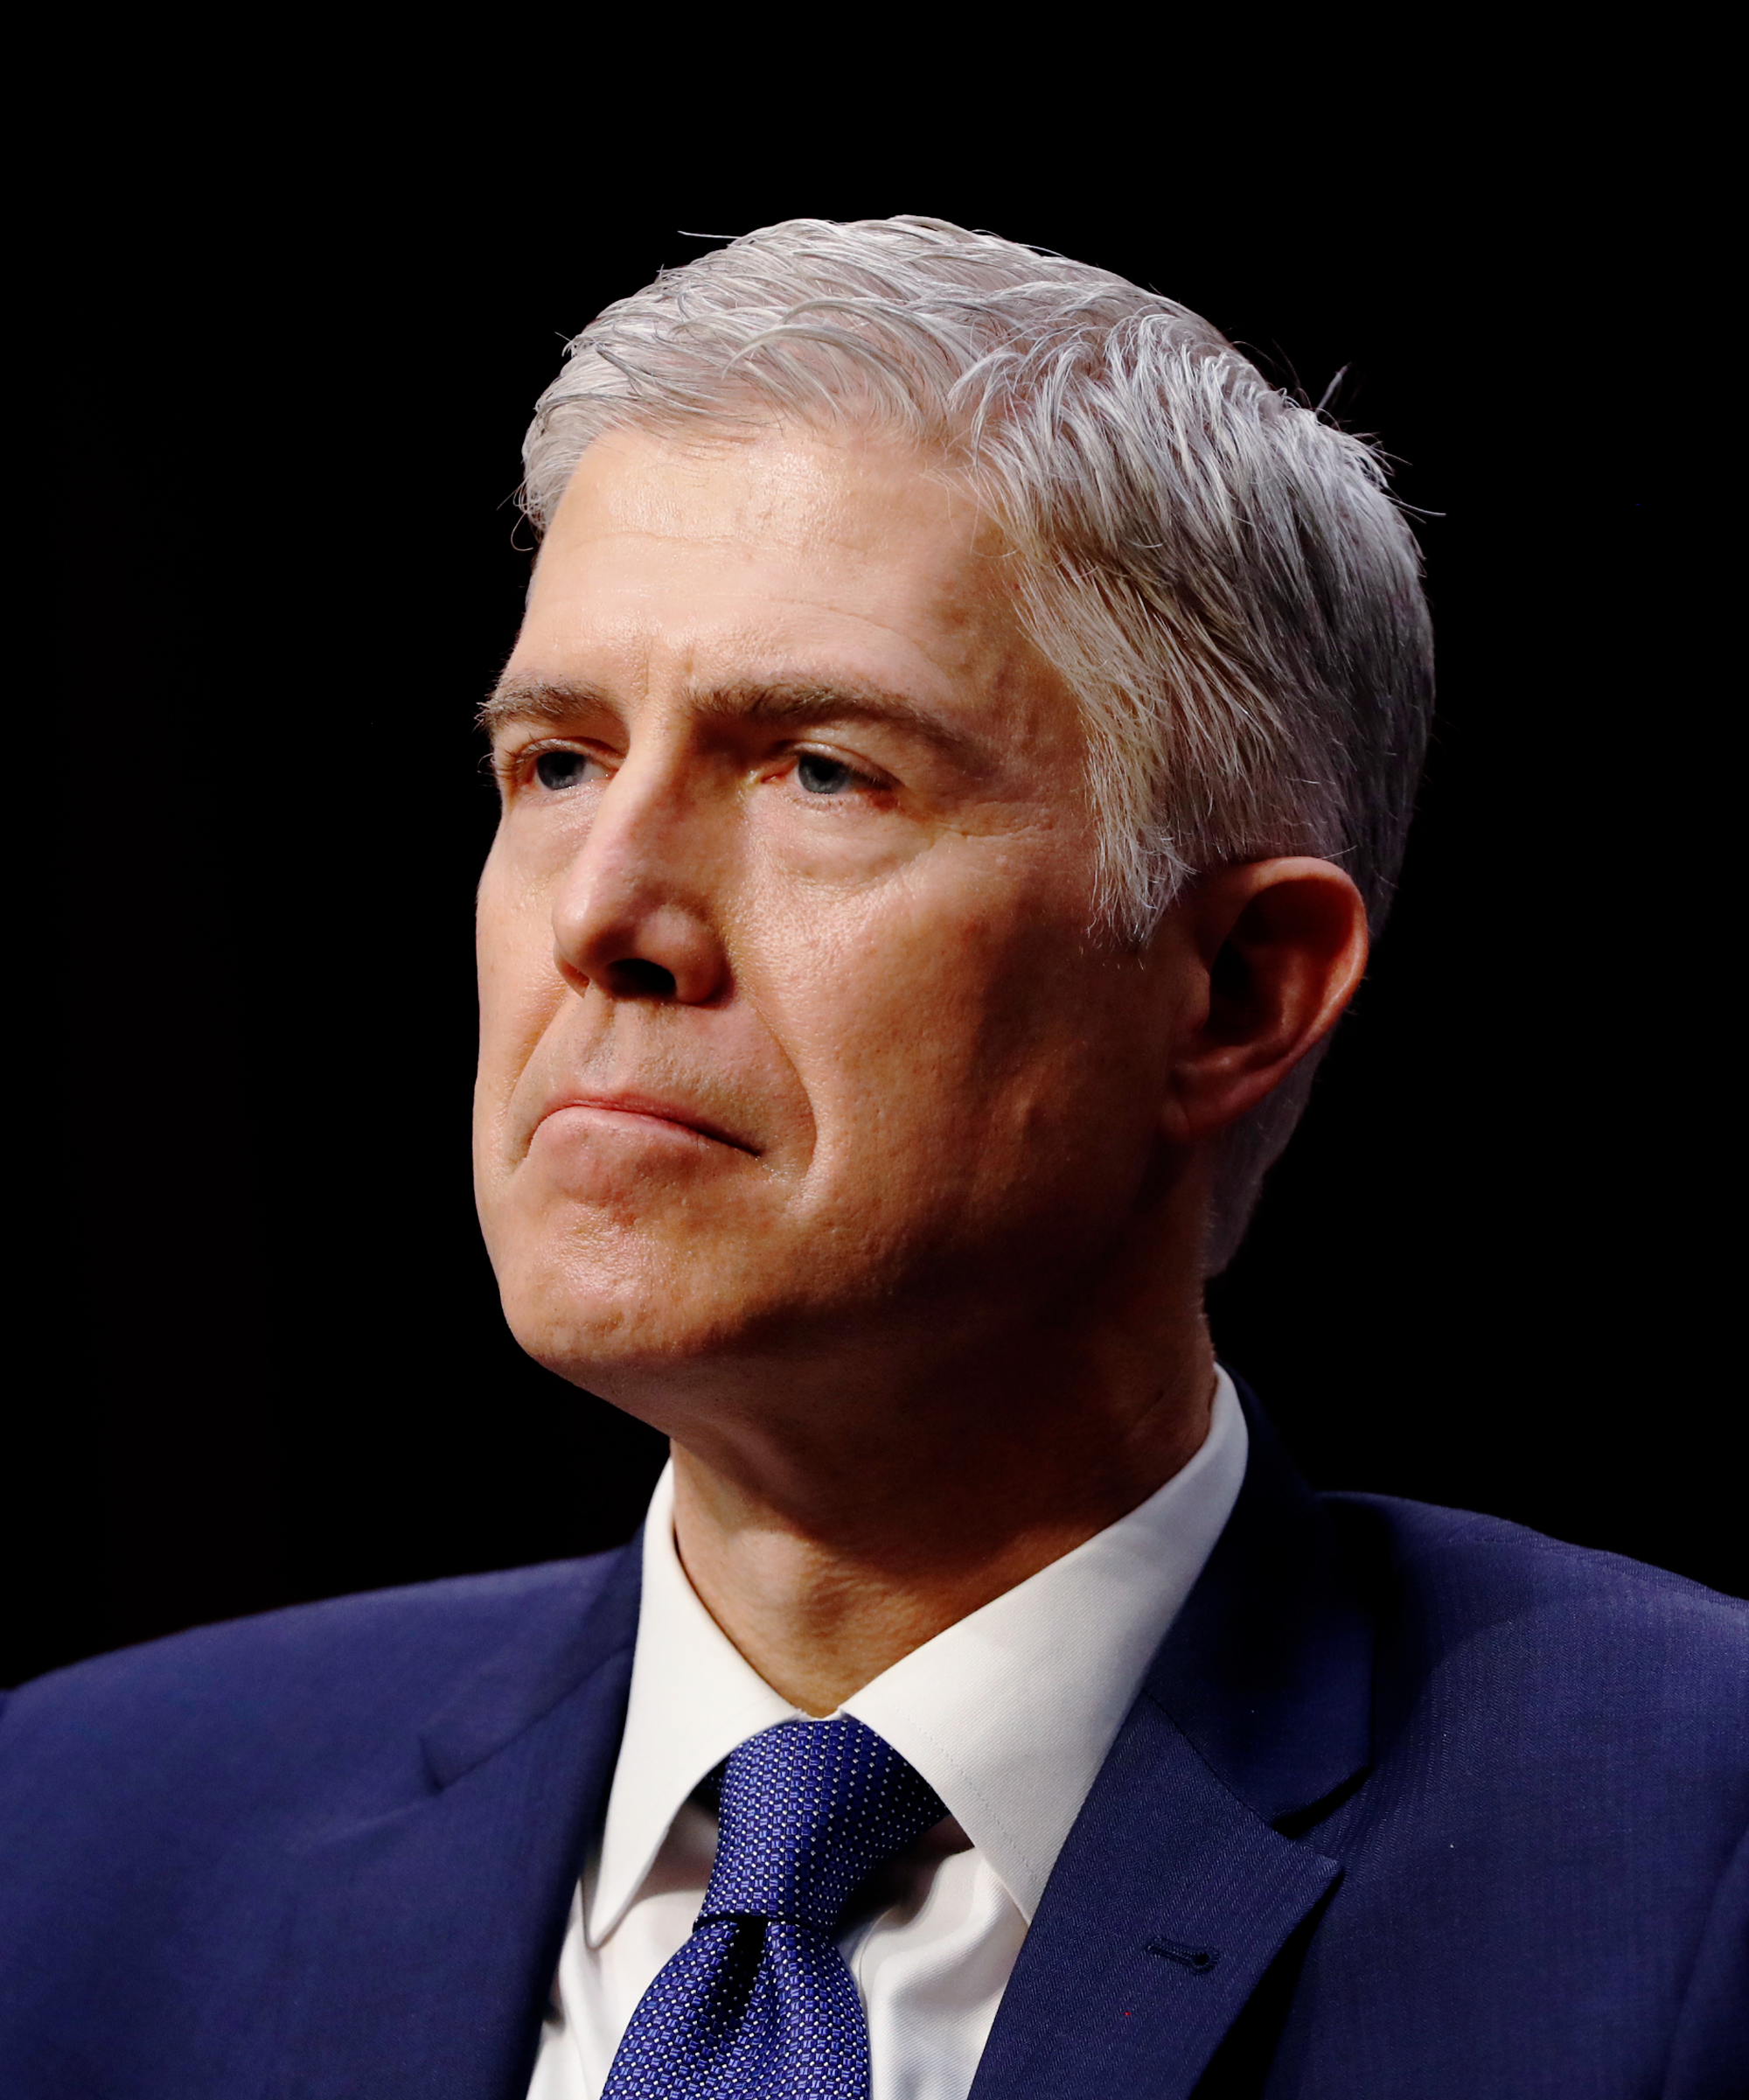 After fierce battle, Gorsuch confirmed to United States top court